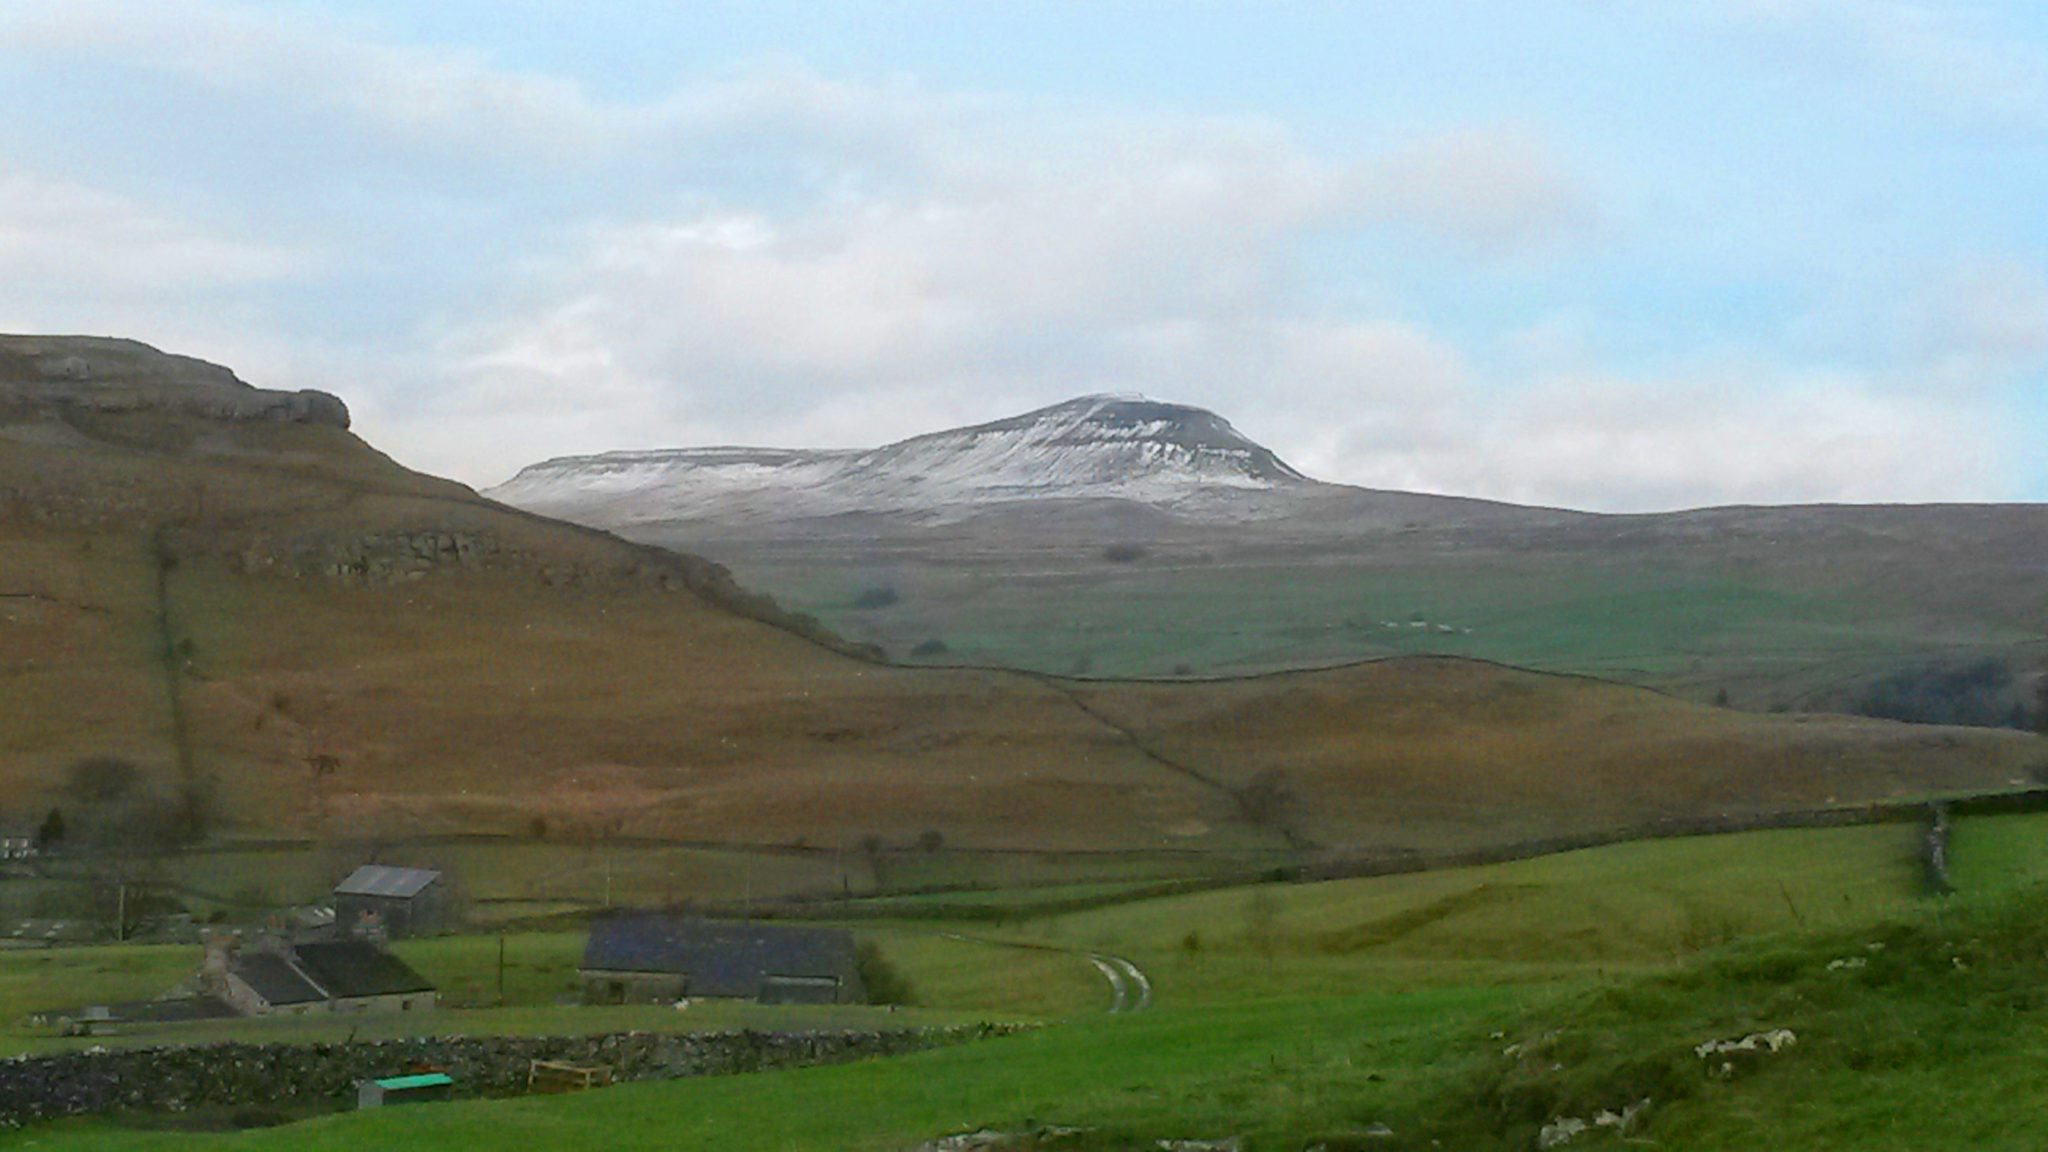 The iconic hill Ingleborough, in the Yorkshire Dales. Photo: Tony Brocklebank